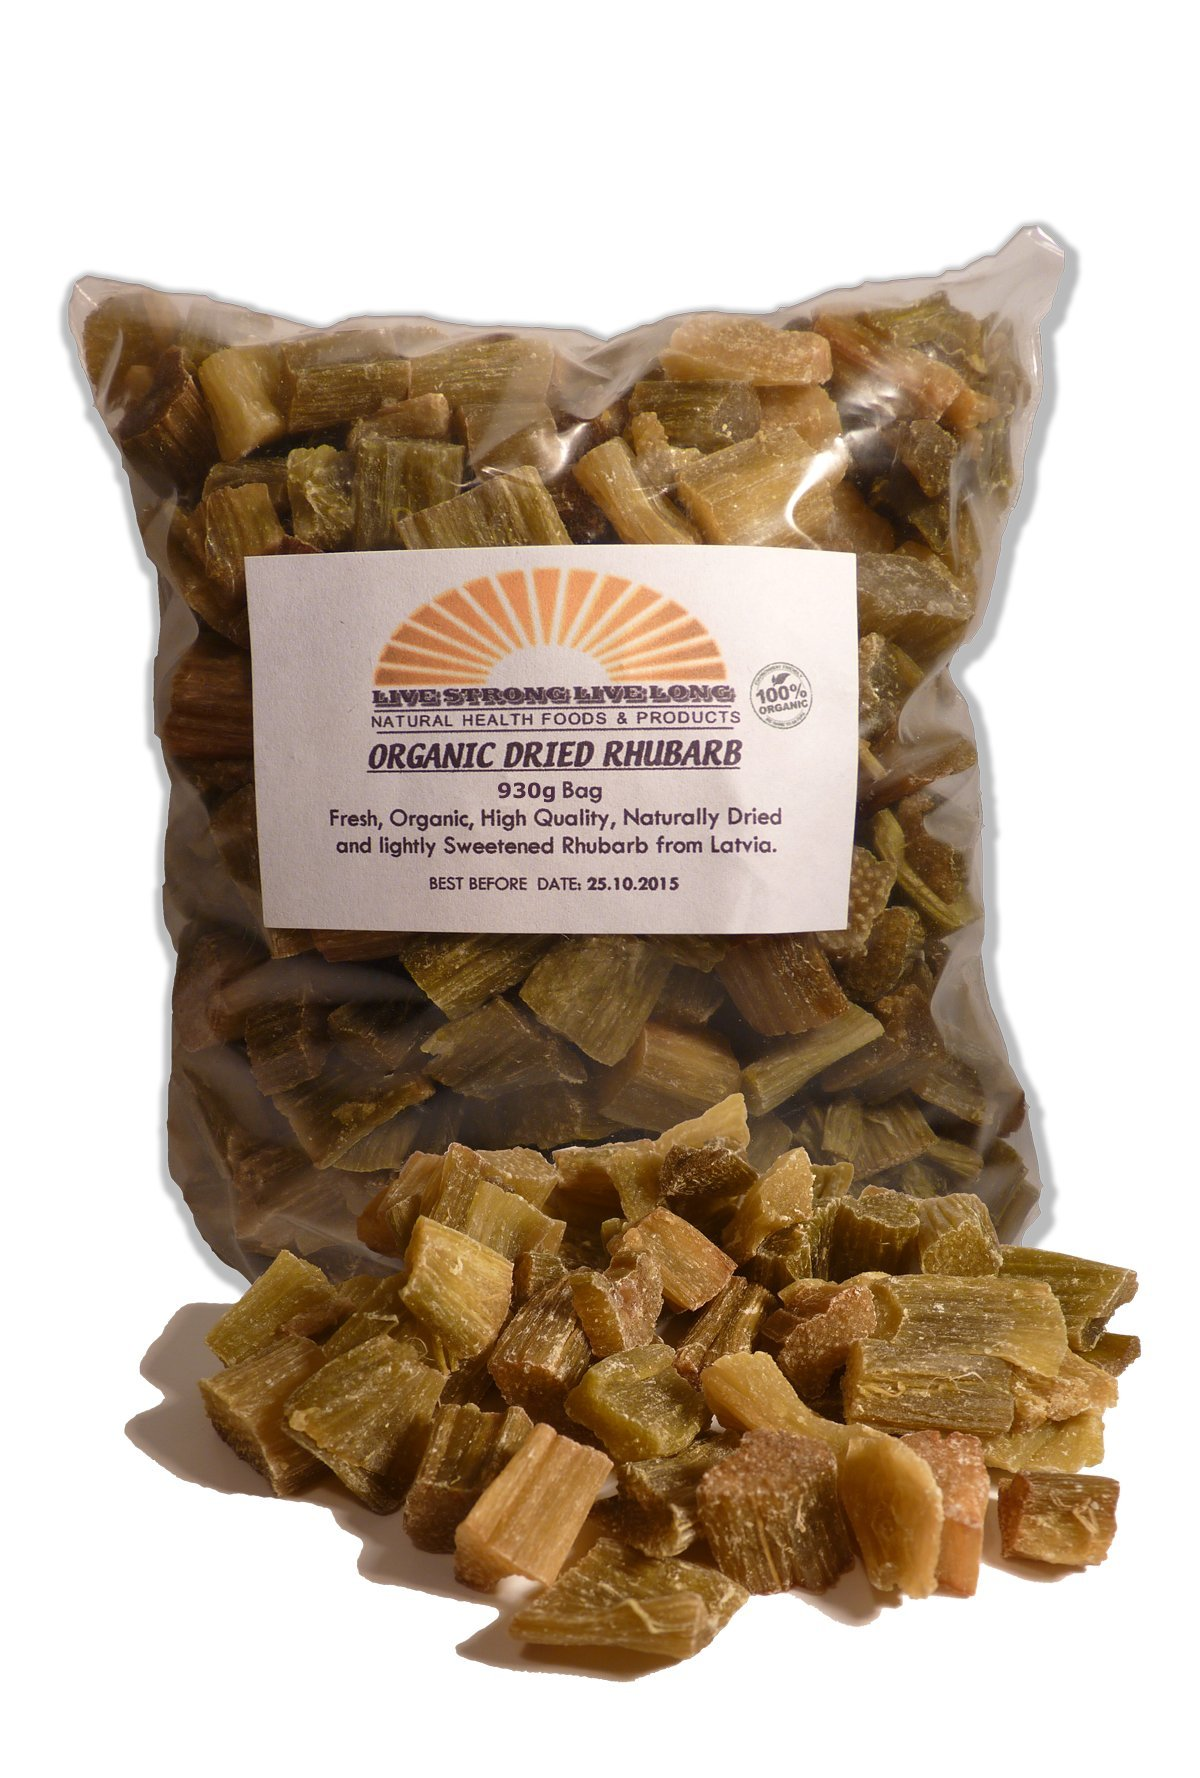 100% Organic Dried Rhubarb Pieces 930g Bag 2lb